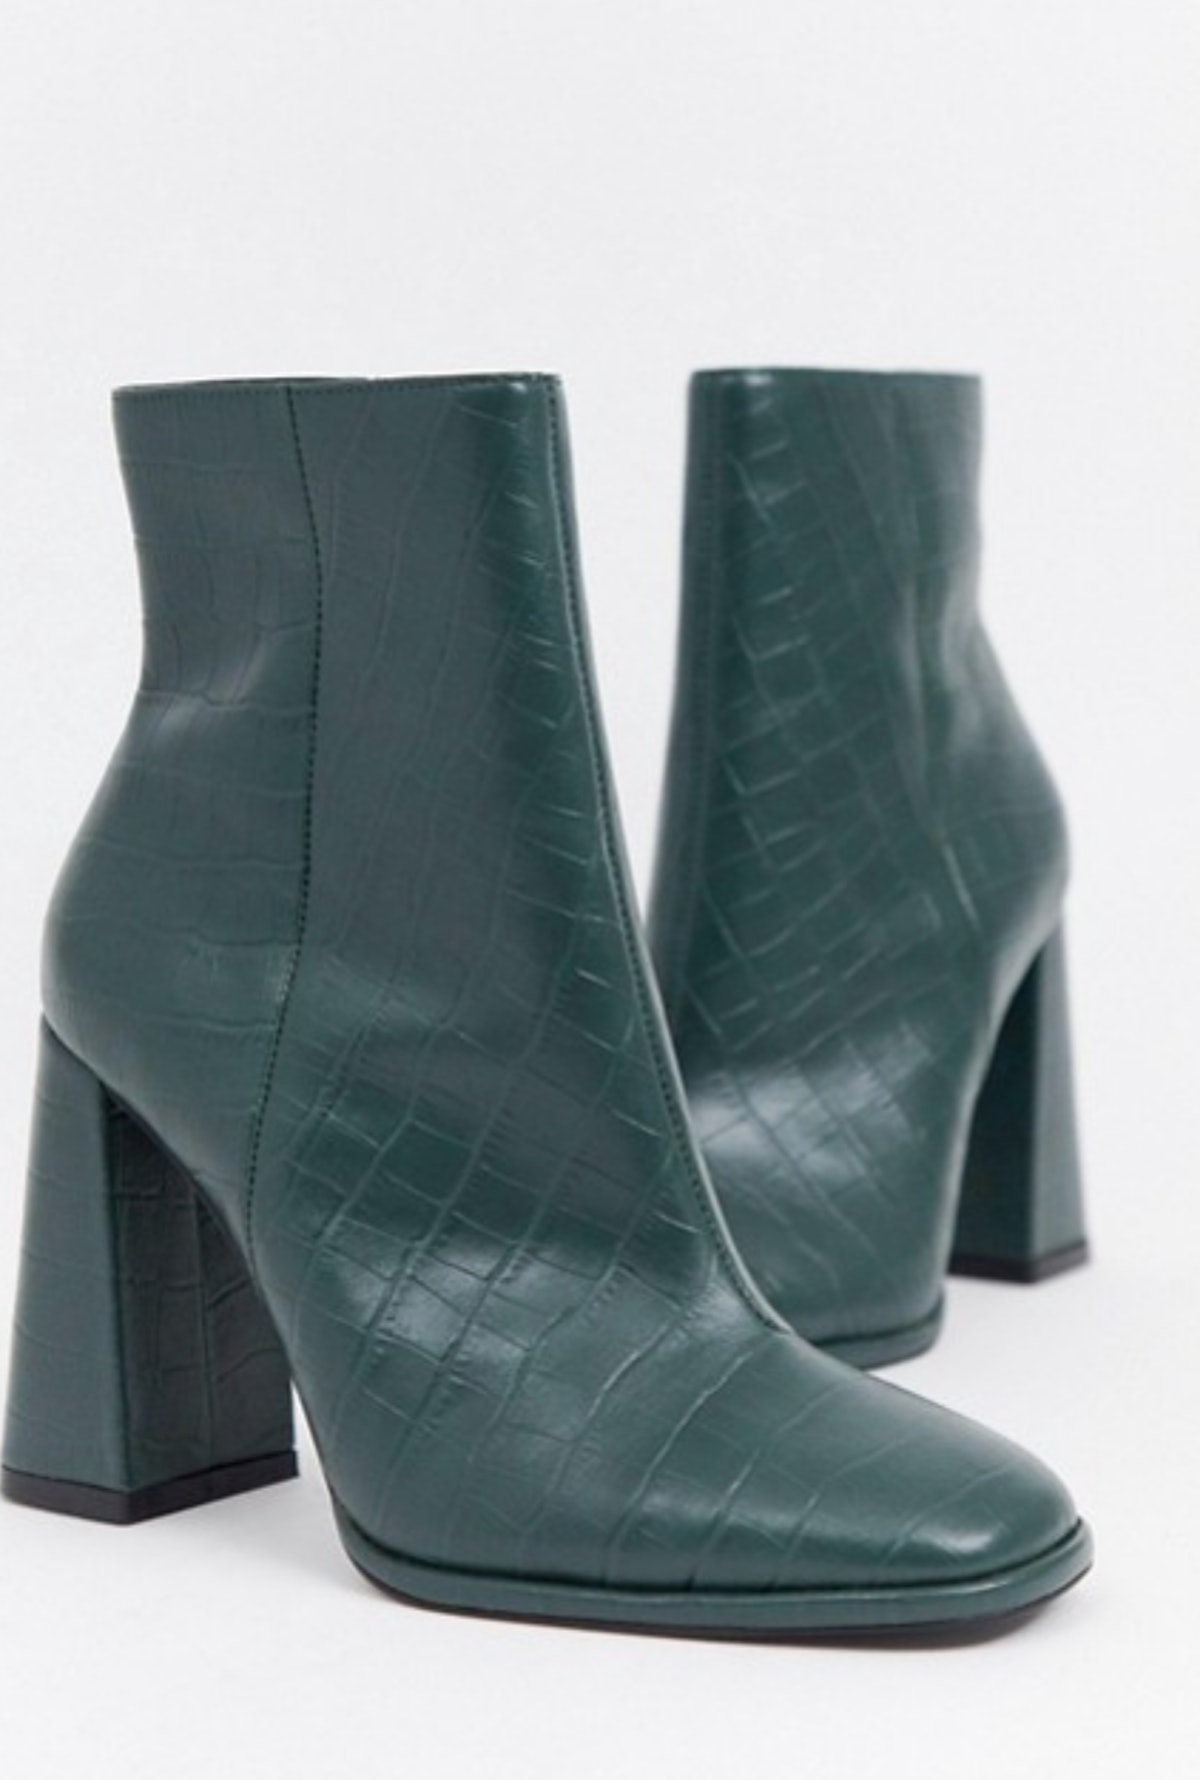 ASOS Design Endless Leather Heeled Boots